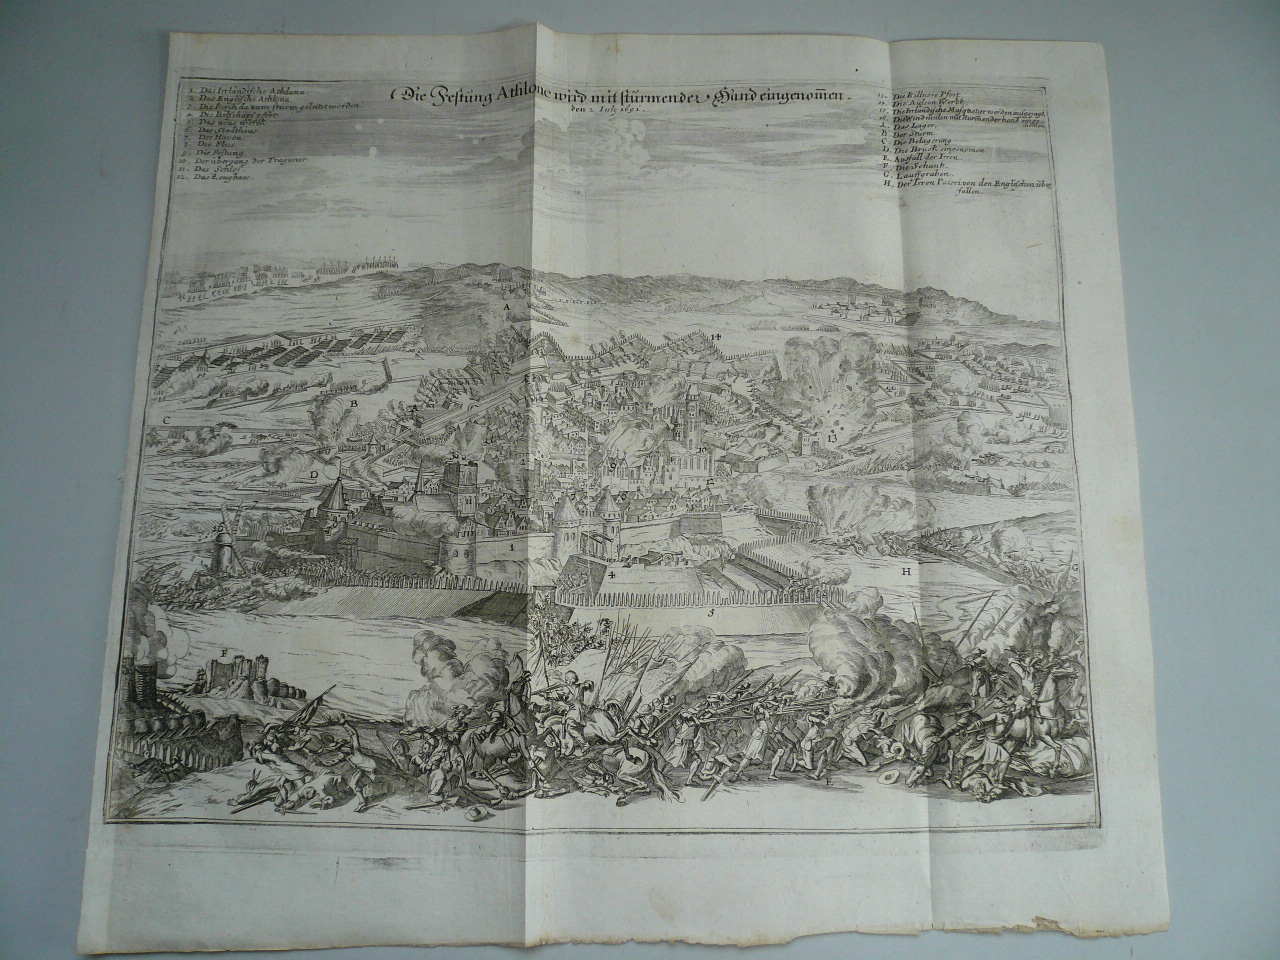 Athlone, battle of 1691, Theatrum Europaeum, 1702 Matthäus Meria